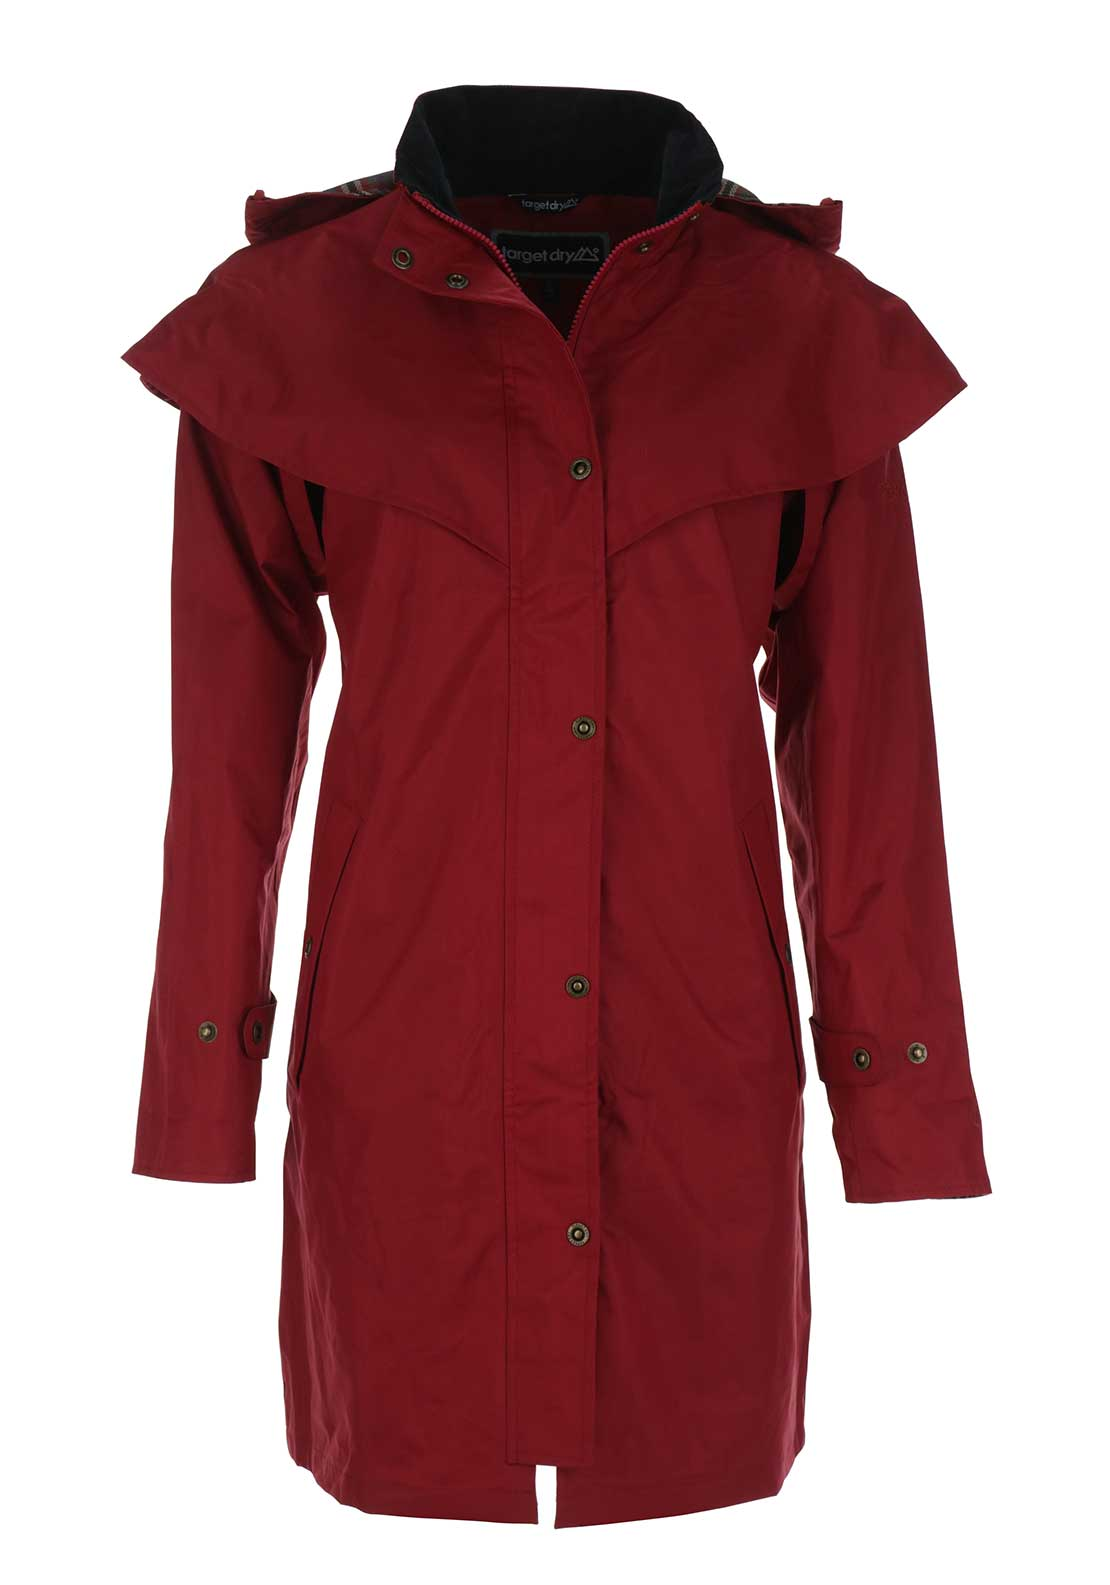 Target Dry Outrider 2 Waterproof Hooded Coat, Red